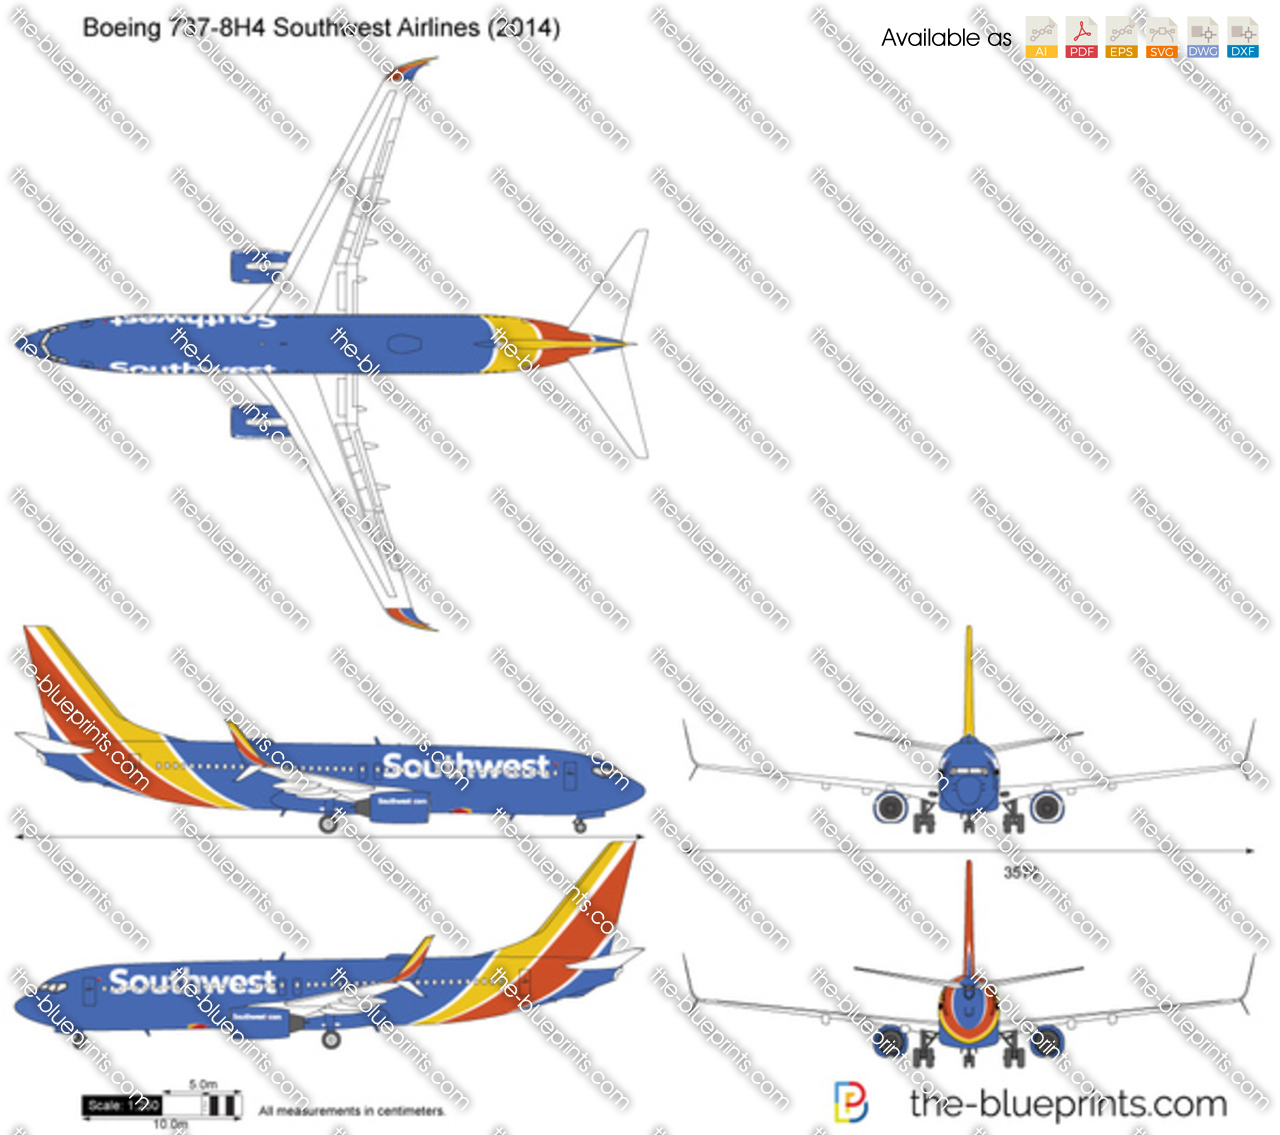 Boeing 737-8H4 Southwest Airlines 2016